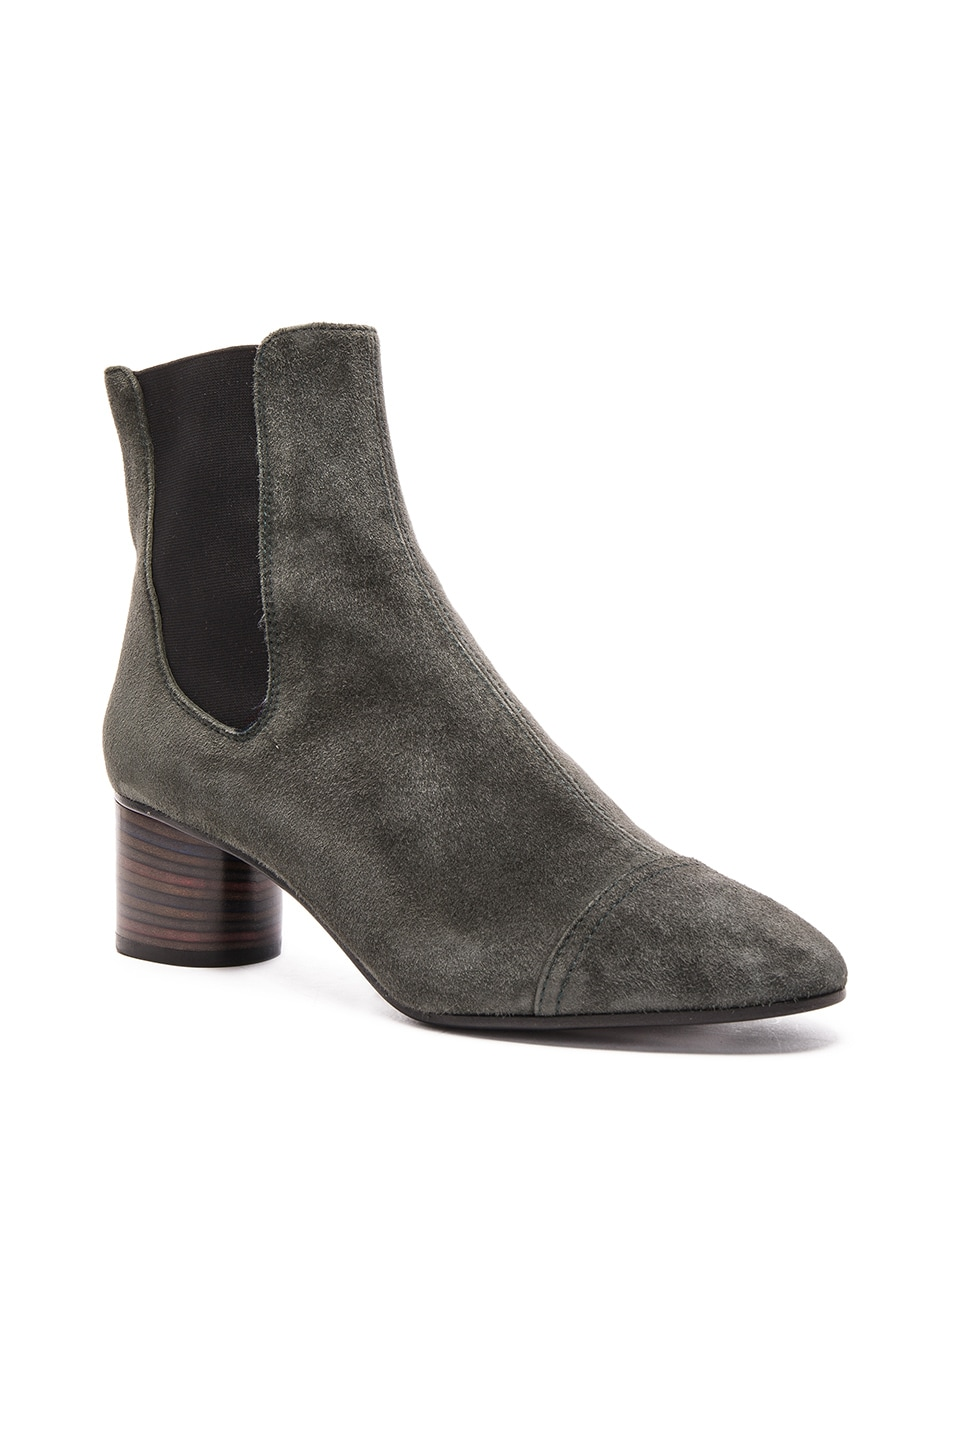 Image 2 of Isabel Marant Danae Velvet Booties in Anthracite